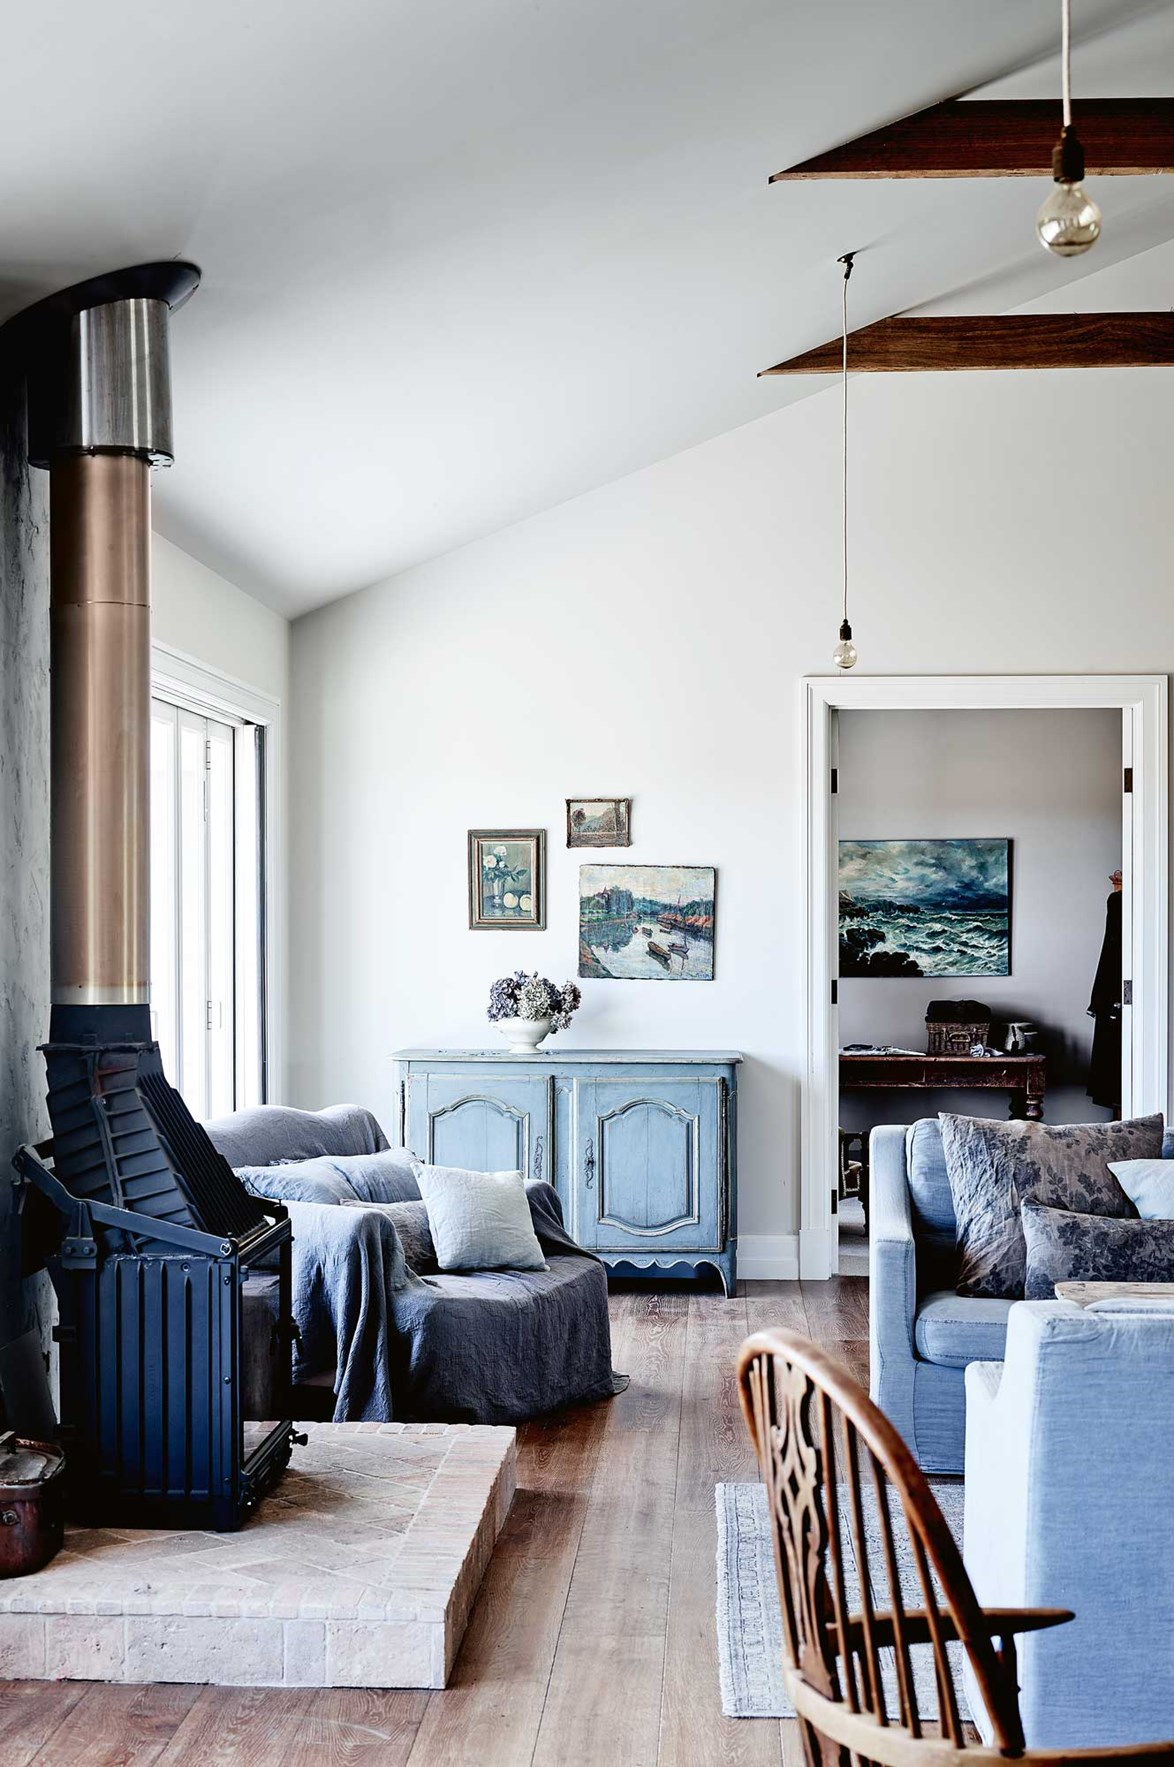 "Upcycled timber furniture and collected artworks add colour and character to this farmhouse in the [Macedon Ranges](https://www.homestolove.com.au/share-house-a-family-farmhouse-in-the-macedon-ranges-14014|target=""_blank"")"